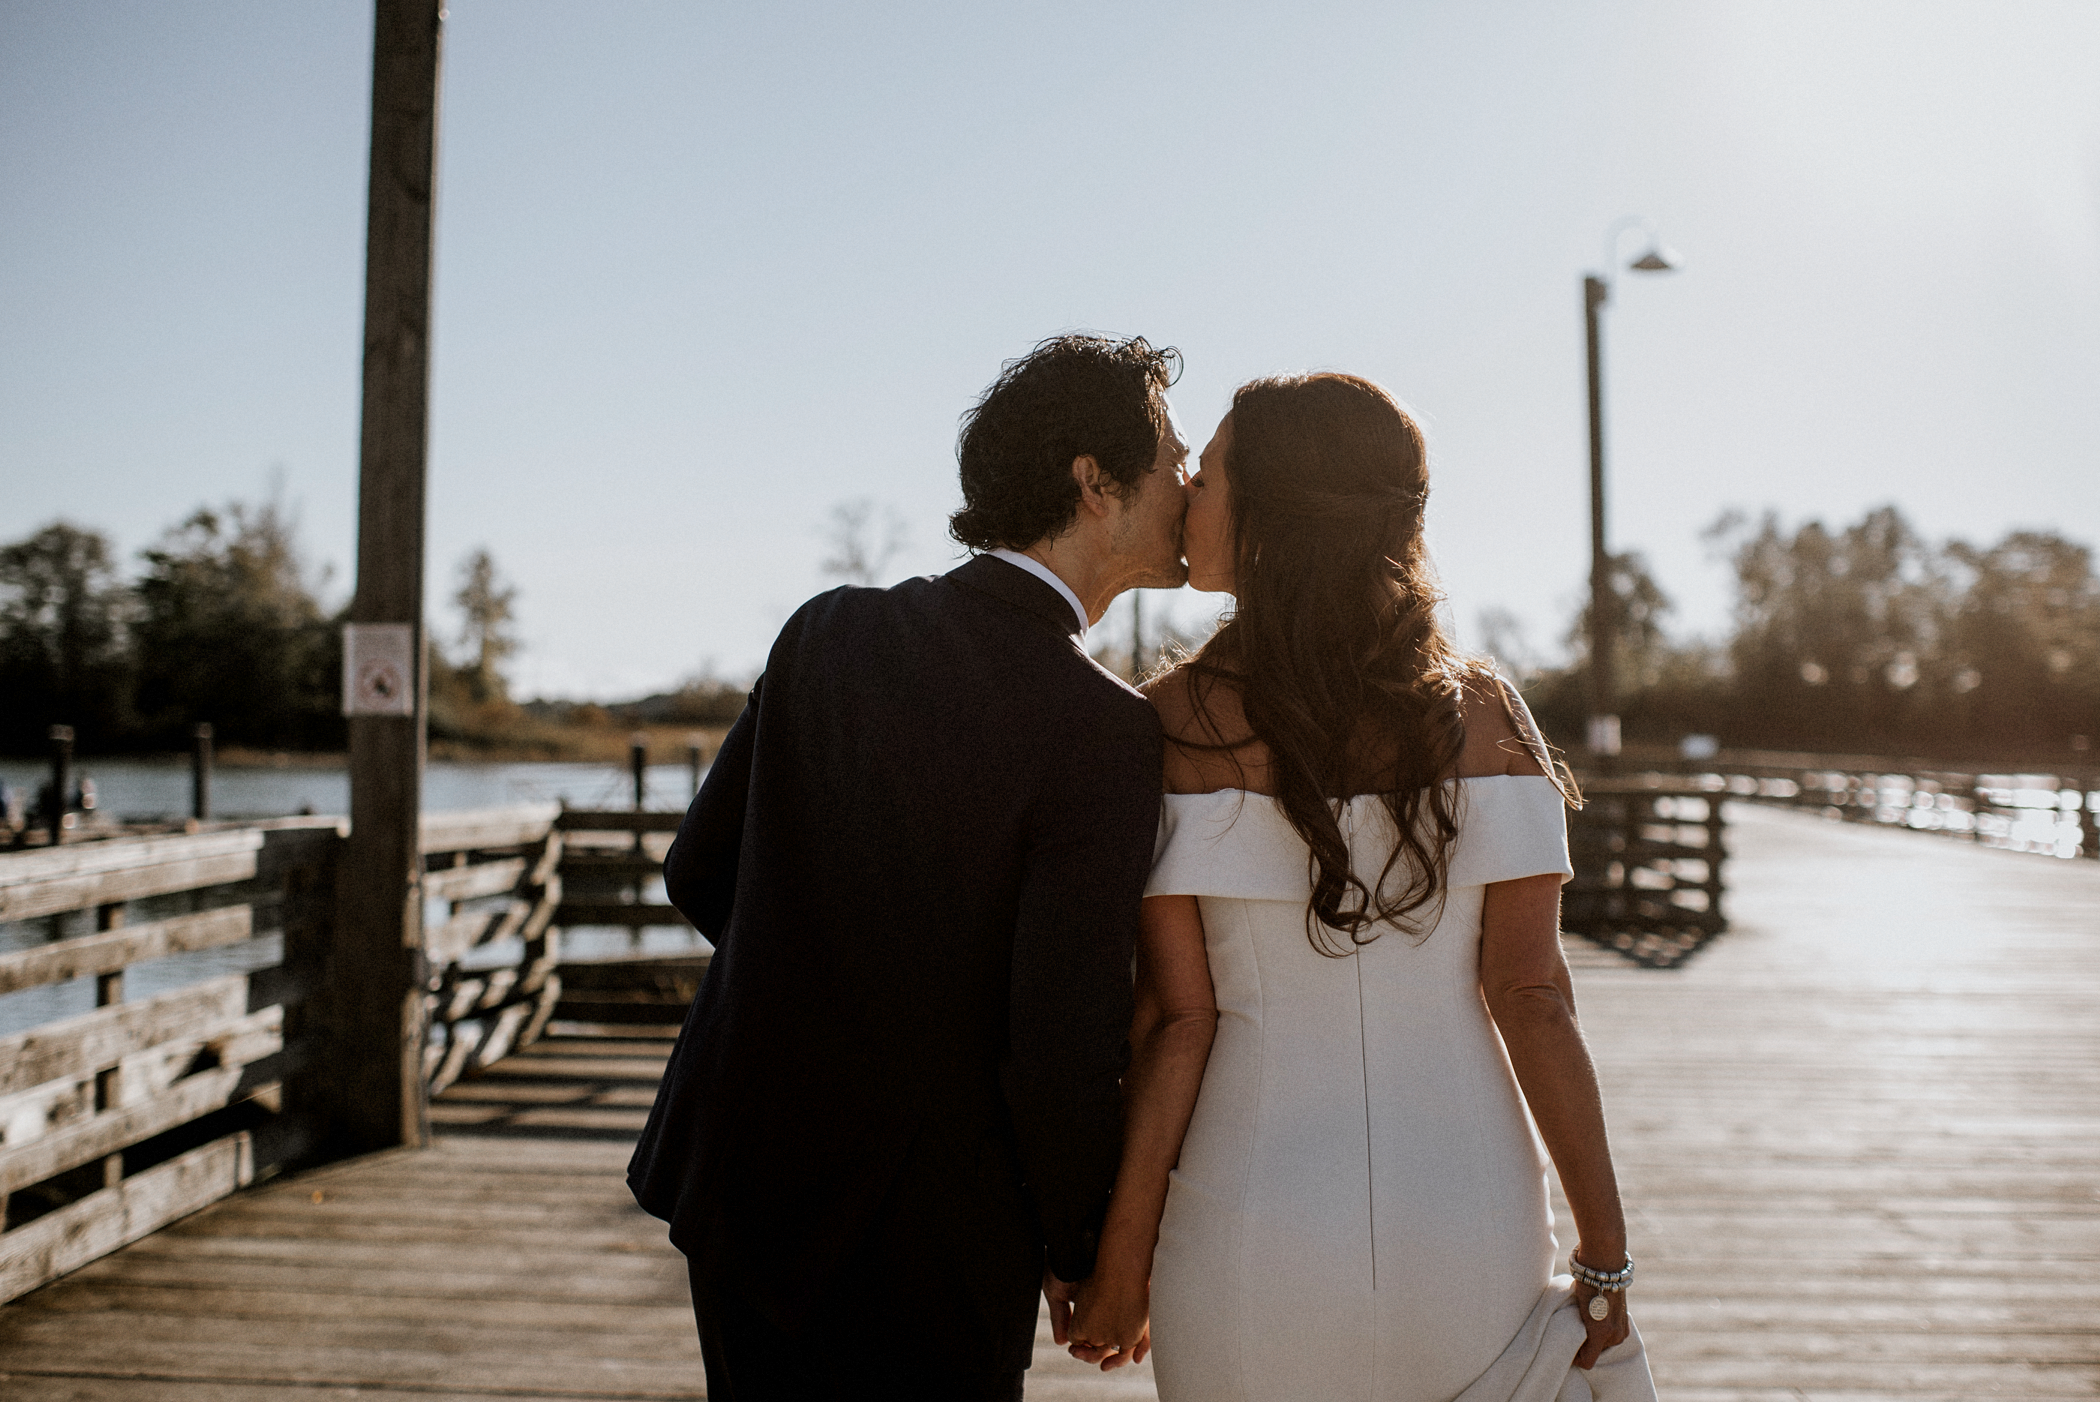 031-kaoverii-silva-MT-ubc-boathouse-industrial-wedding-photography-blog.png